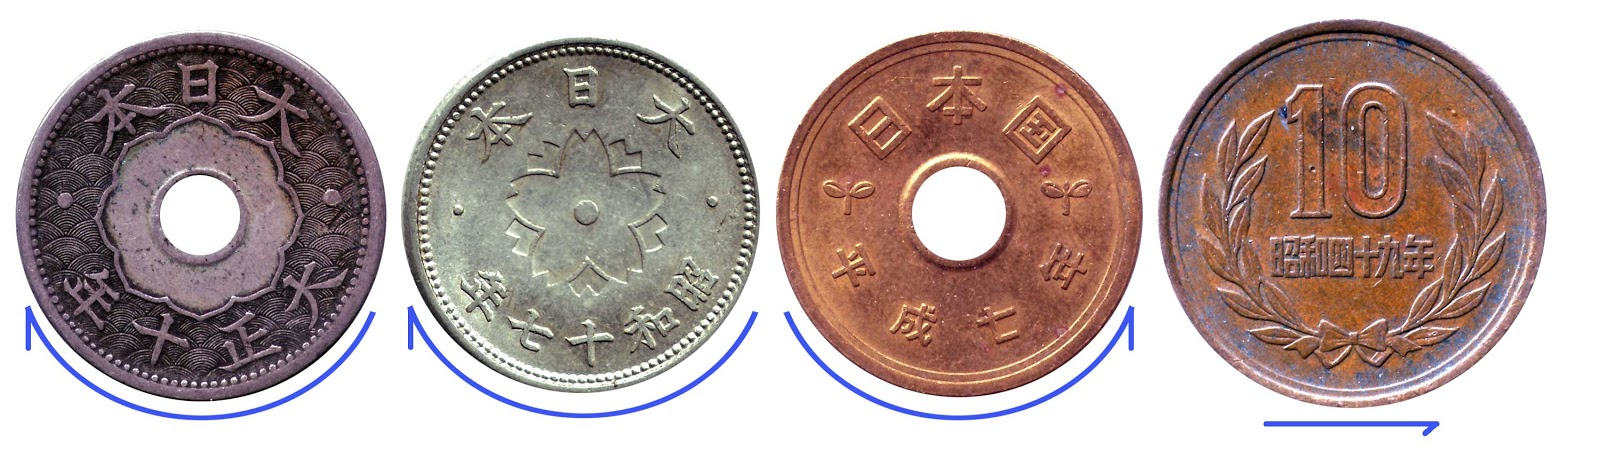 World Coin Collecting Reading Japanese Numbers And Dates